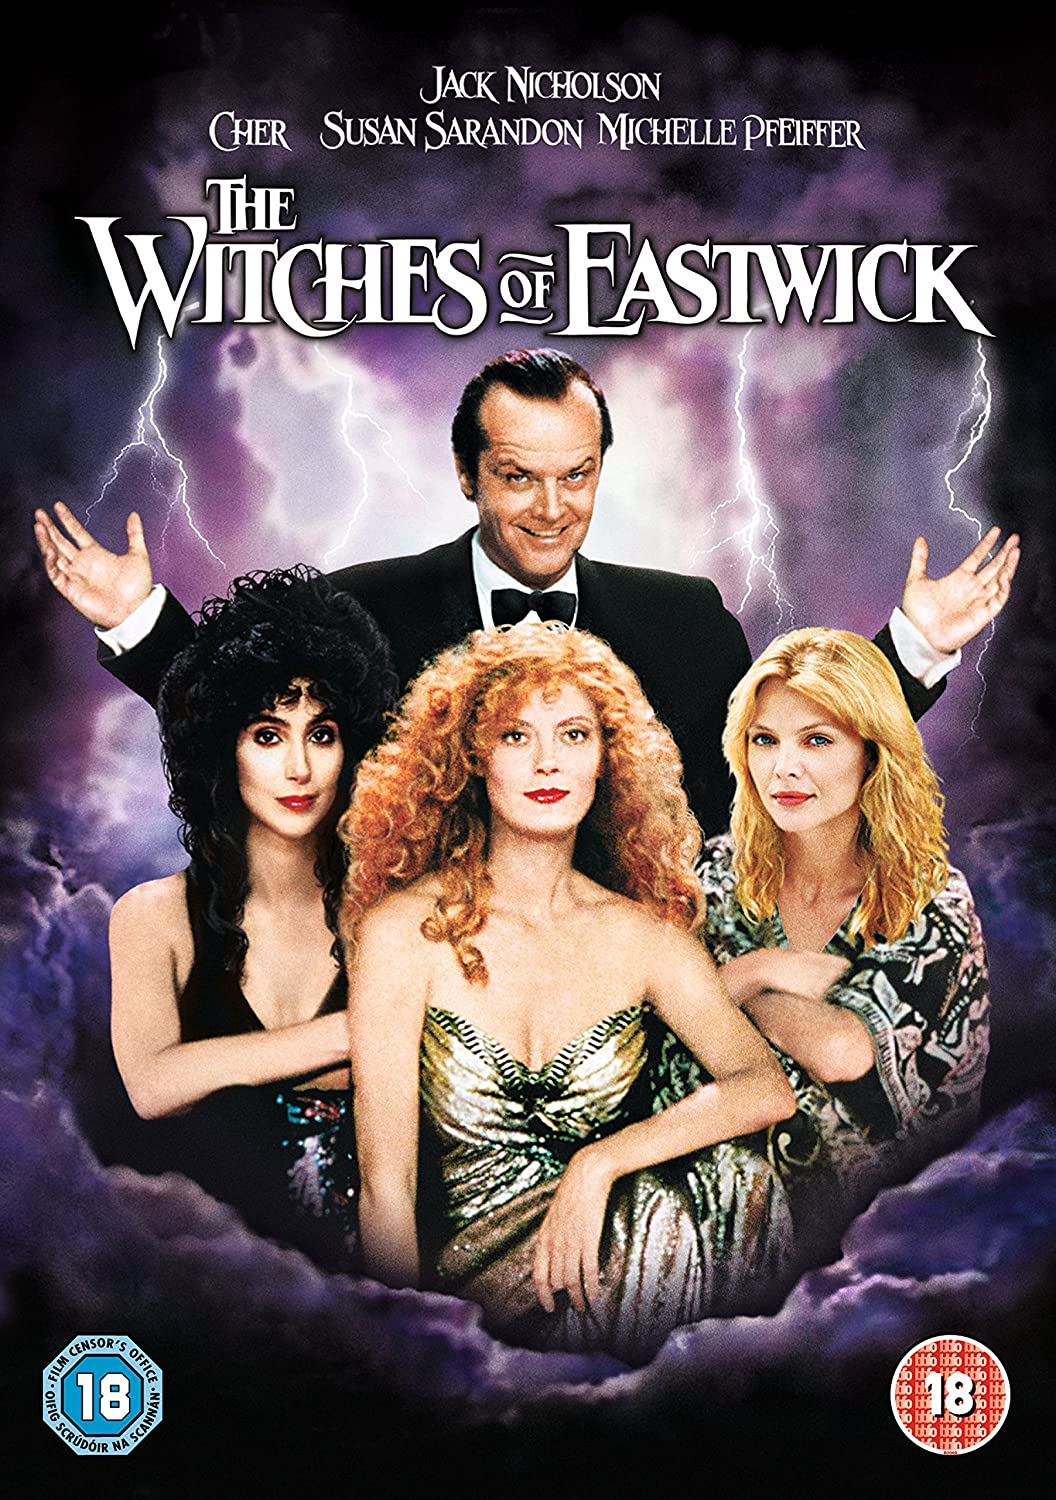 Pildiotsingu the witches of eastwick tulemus